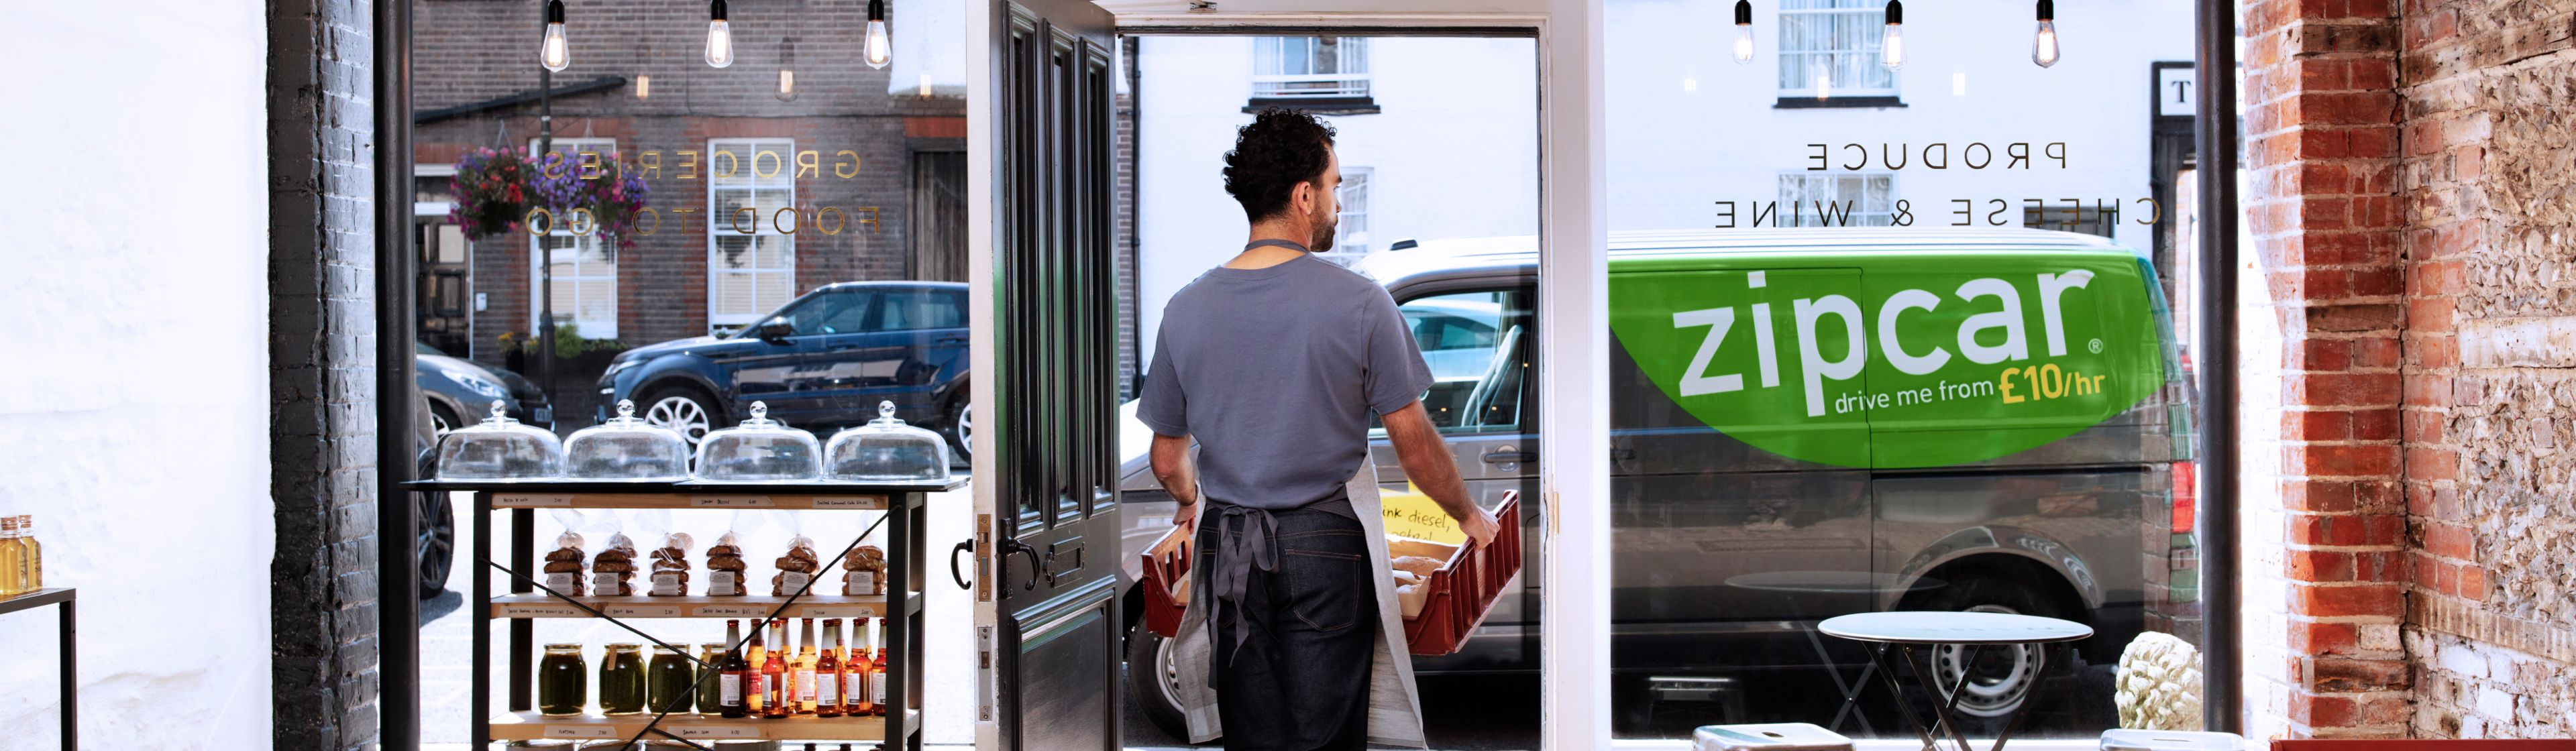 zipcar for business delivery